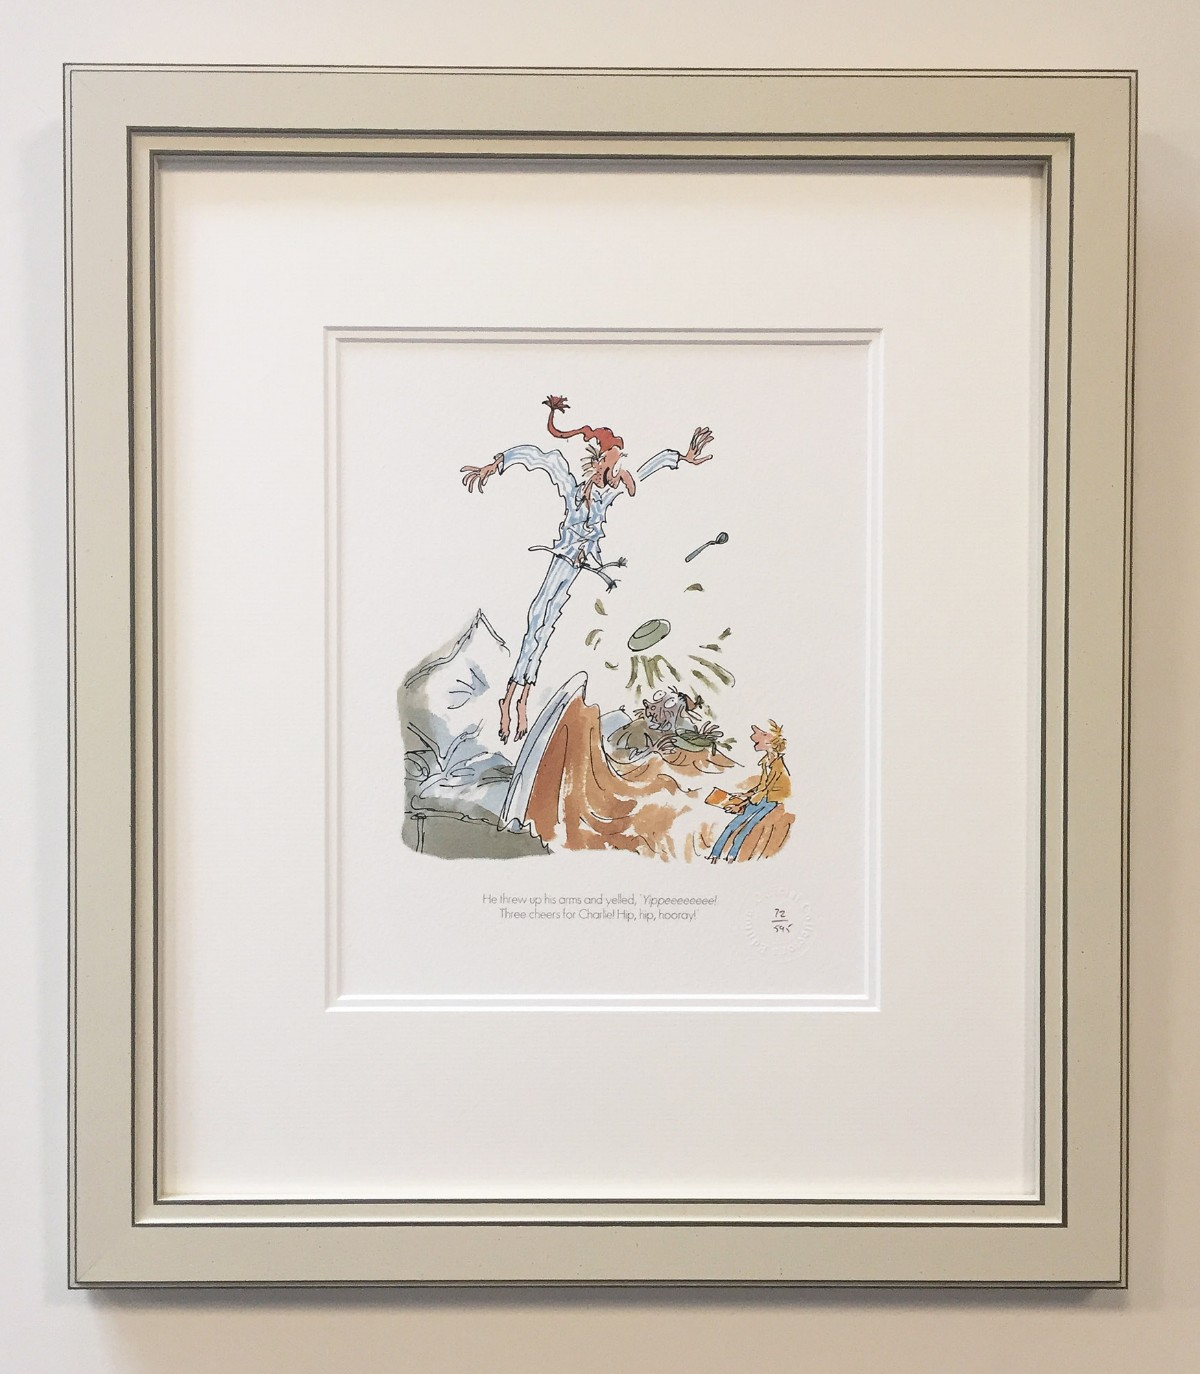 Three Cheers for Charlie! by Quentin Blake